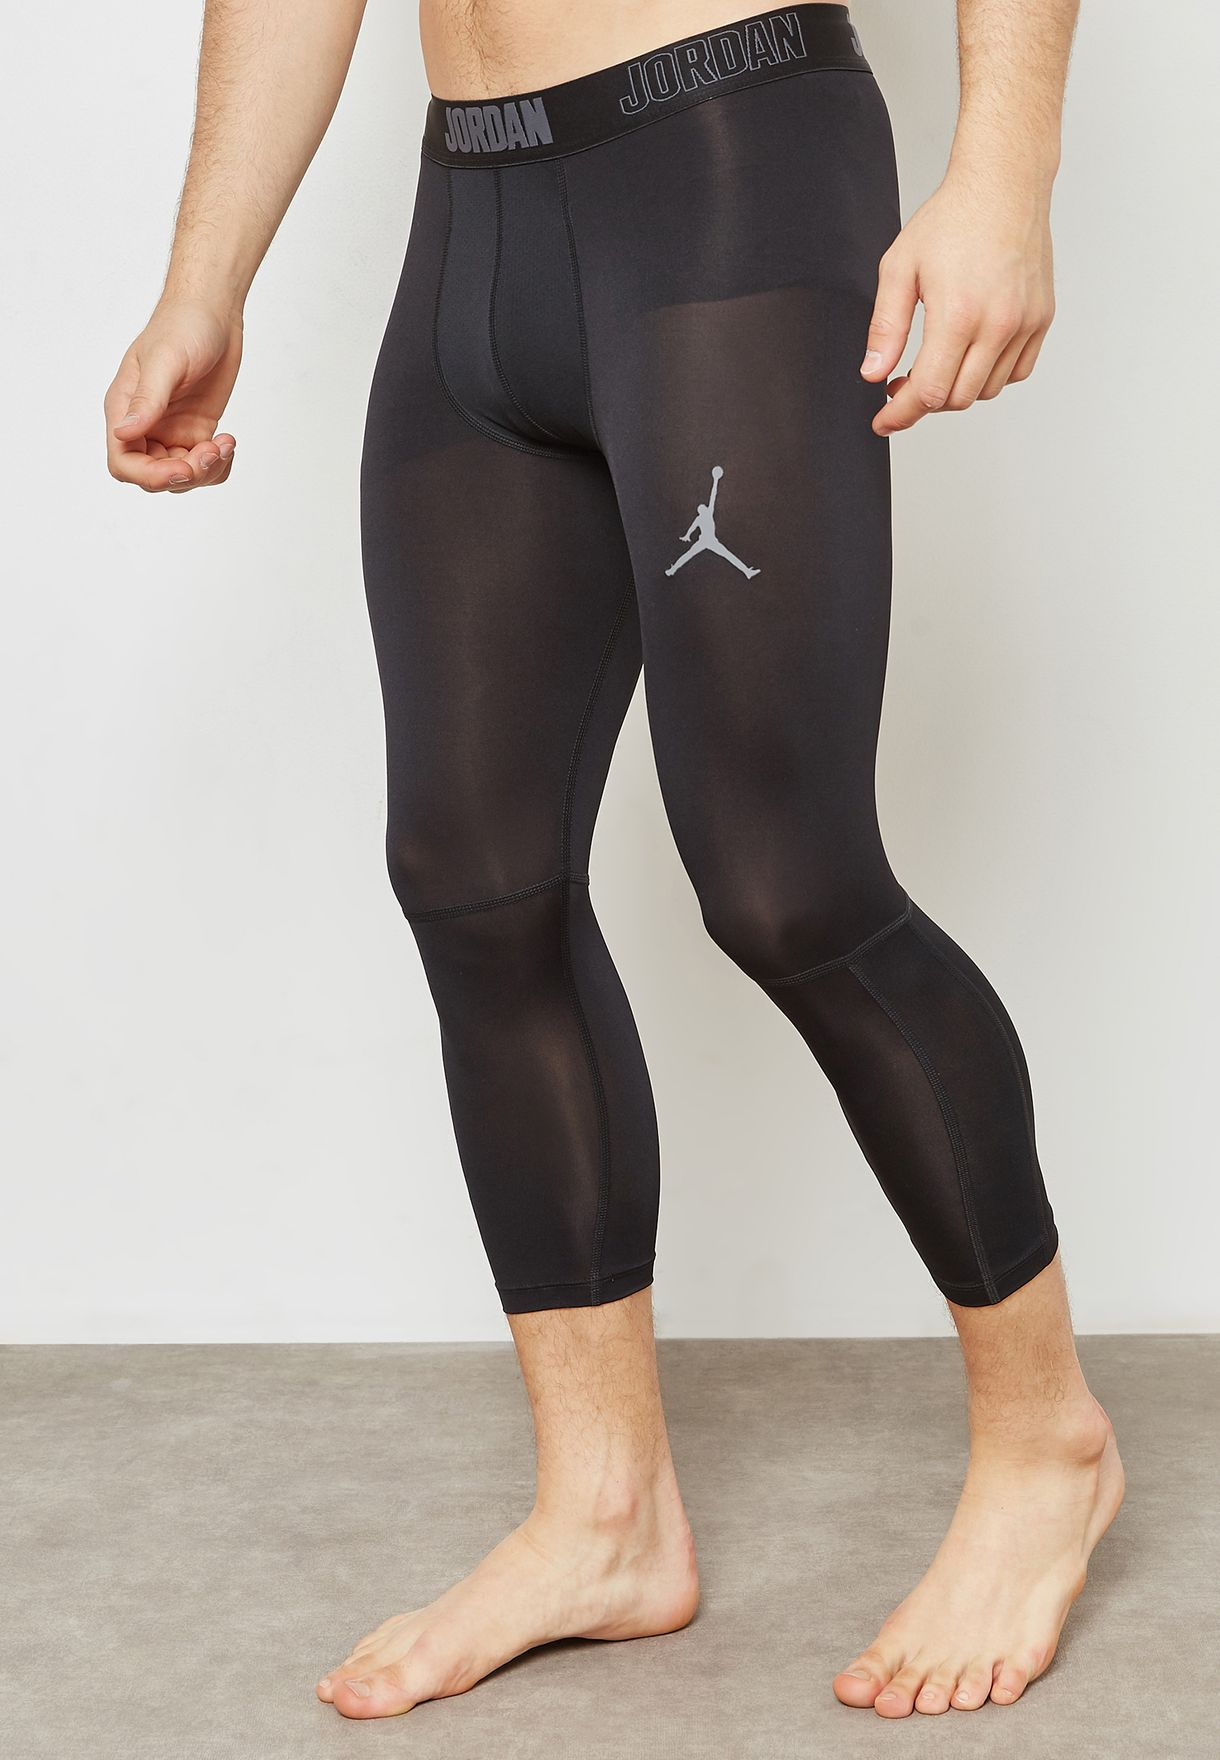 Jordan Dri-FIT 23 Alpha 3/4 Tights